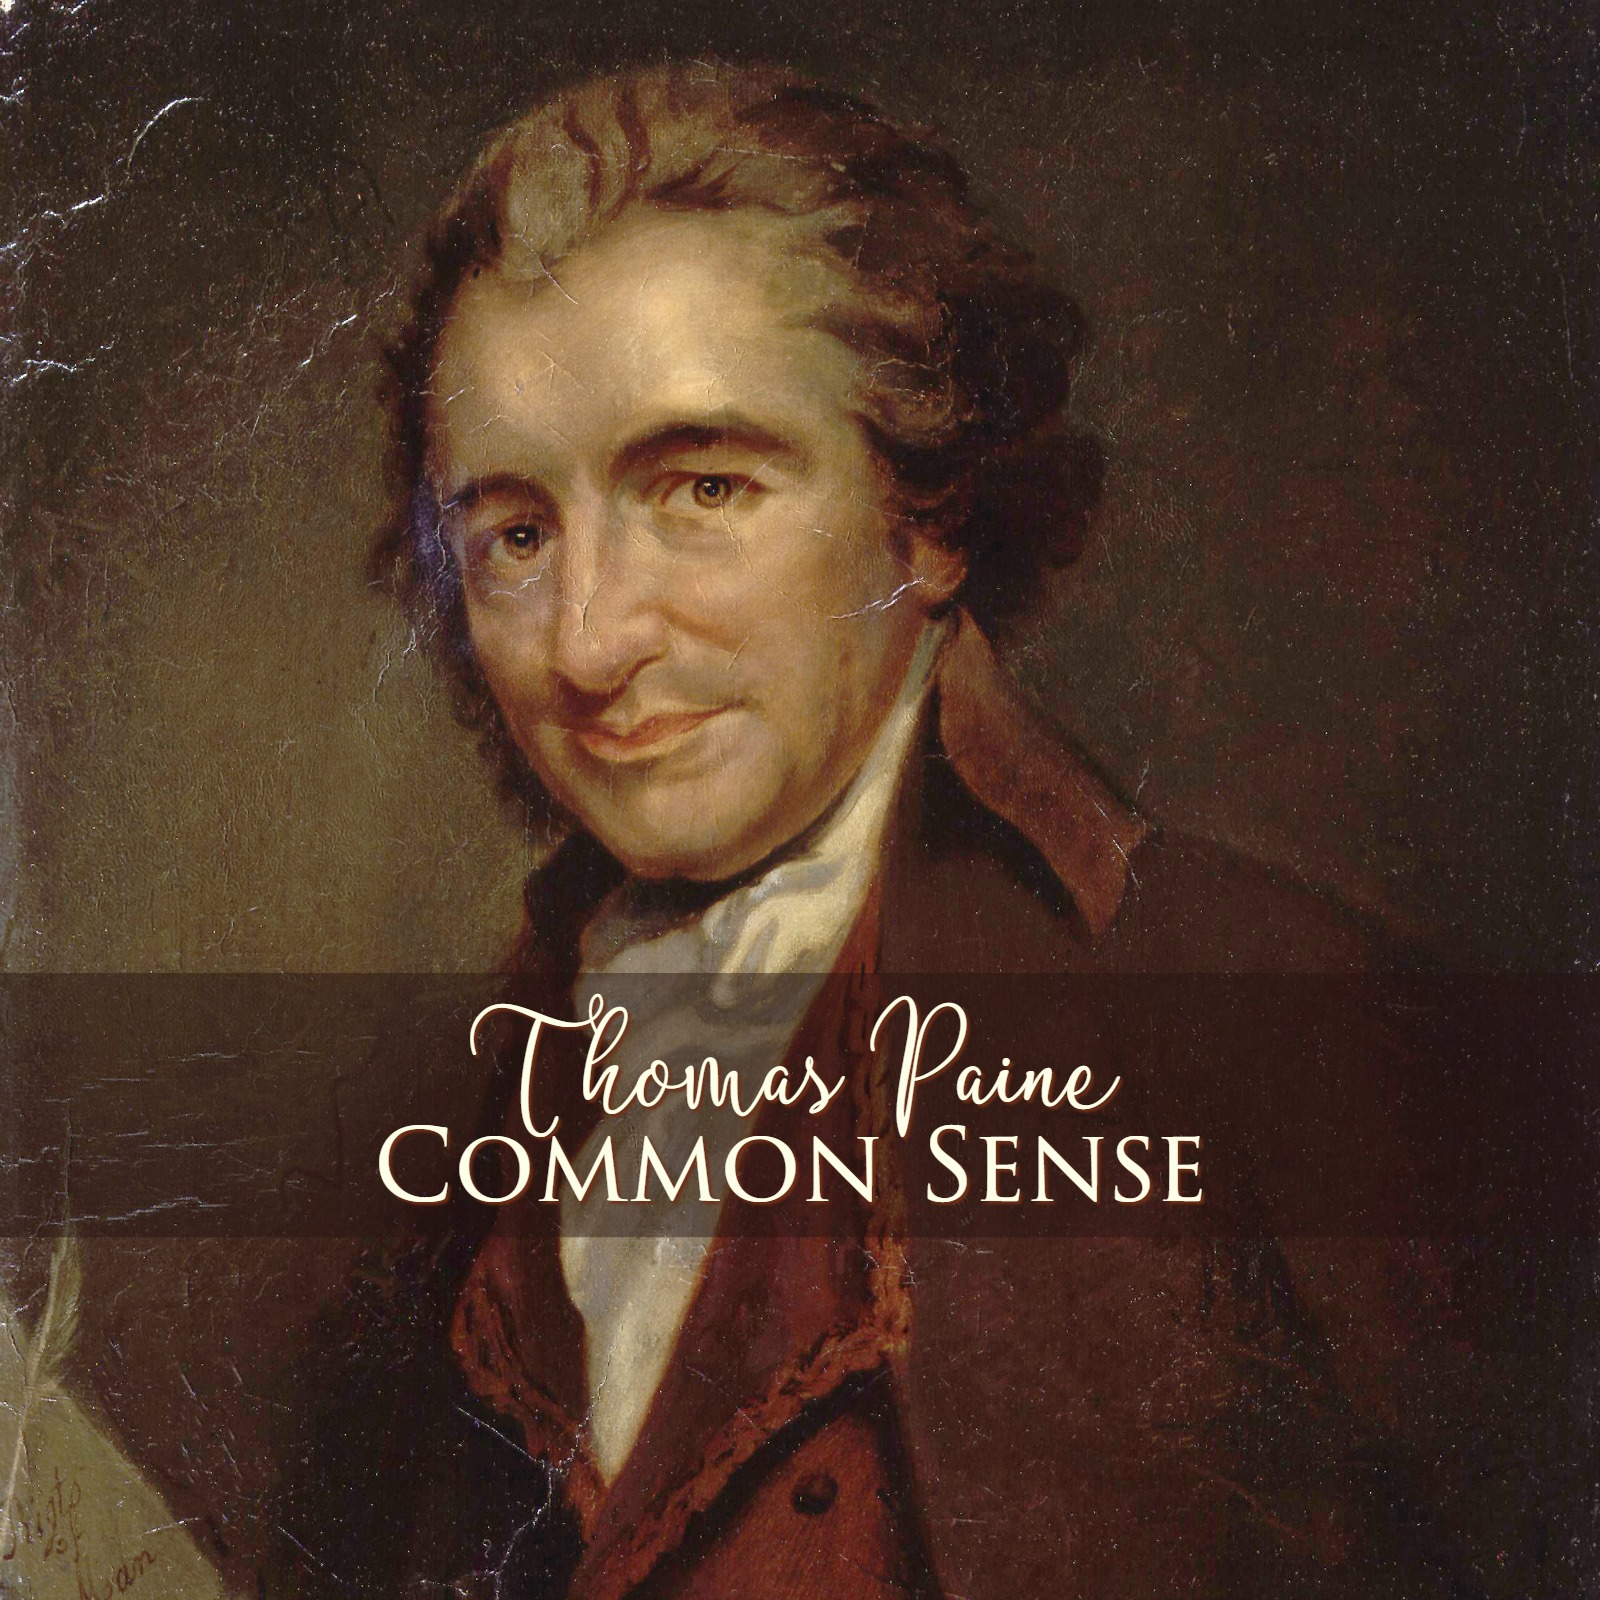 In Thomas Paine Publishes Common Sense On This Day